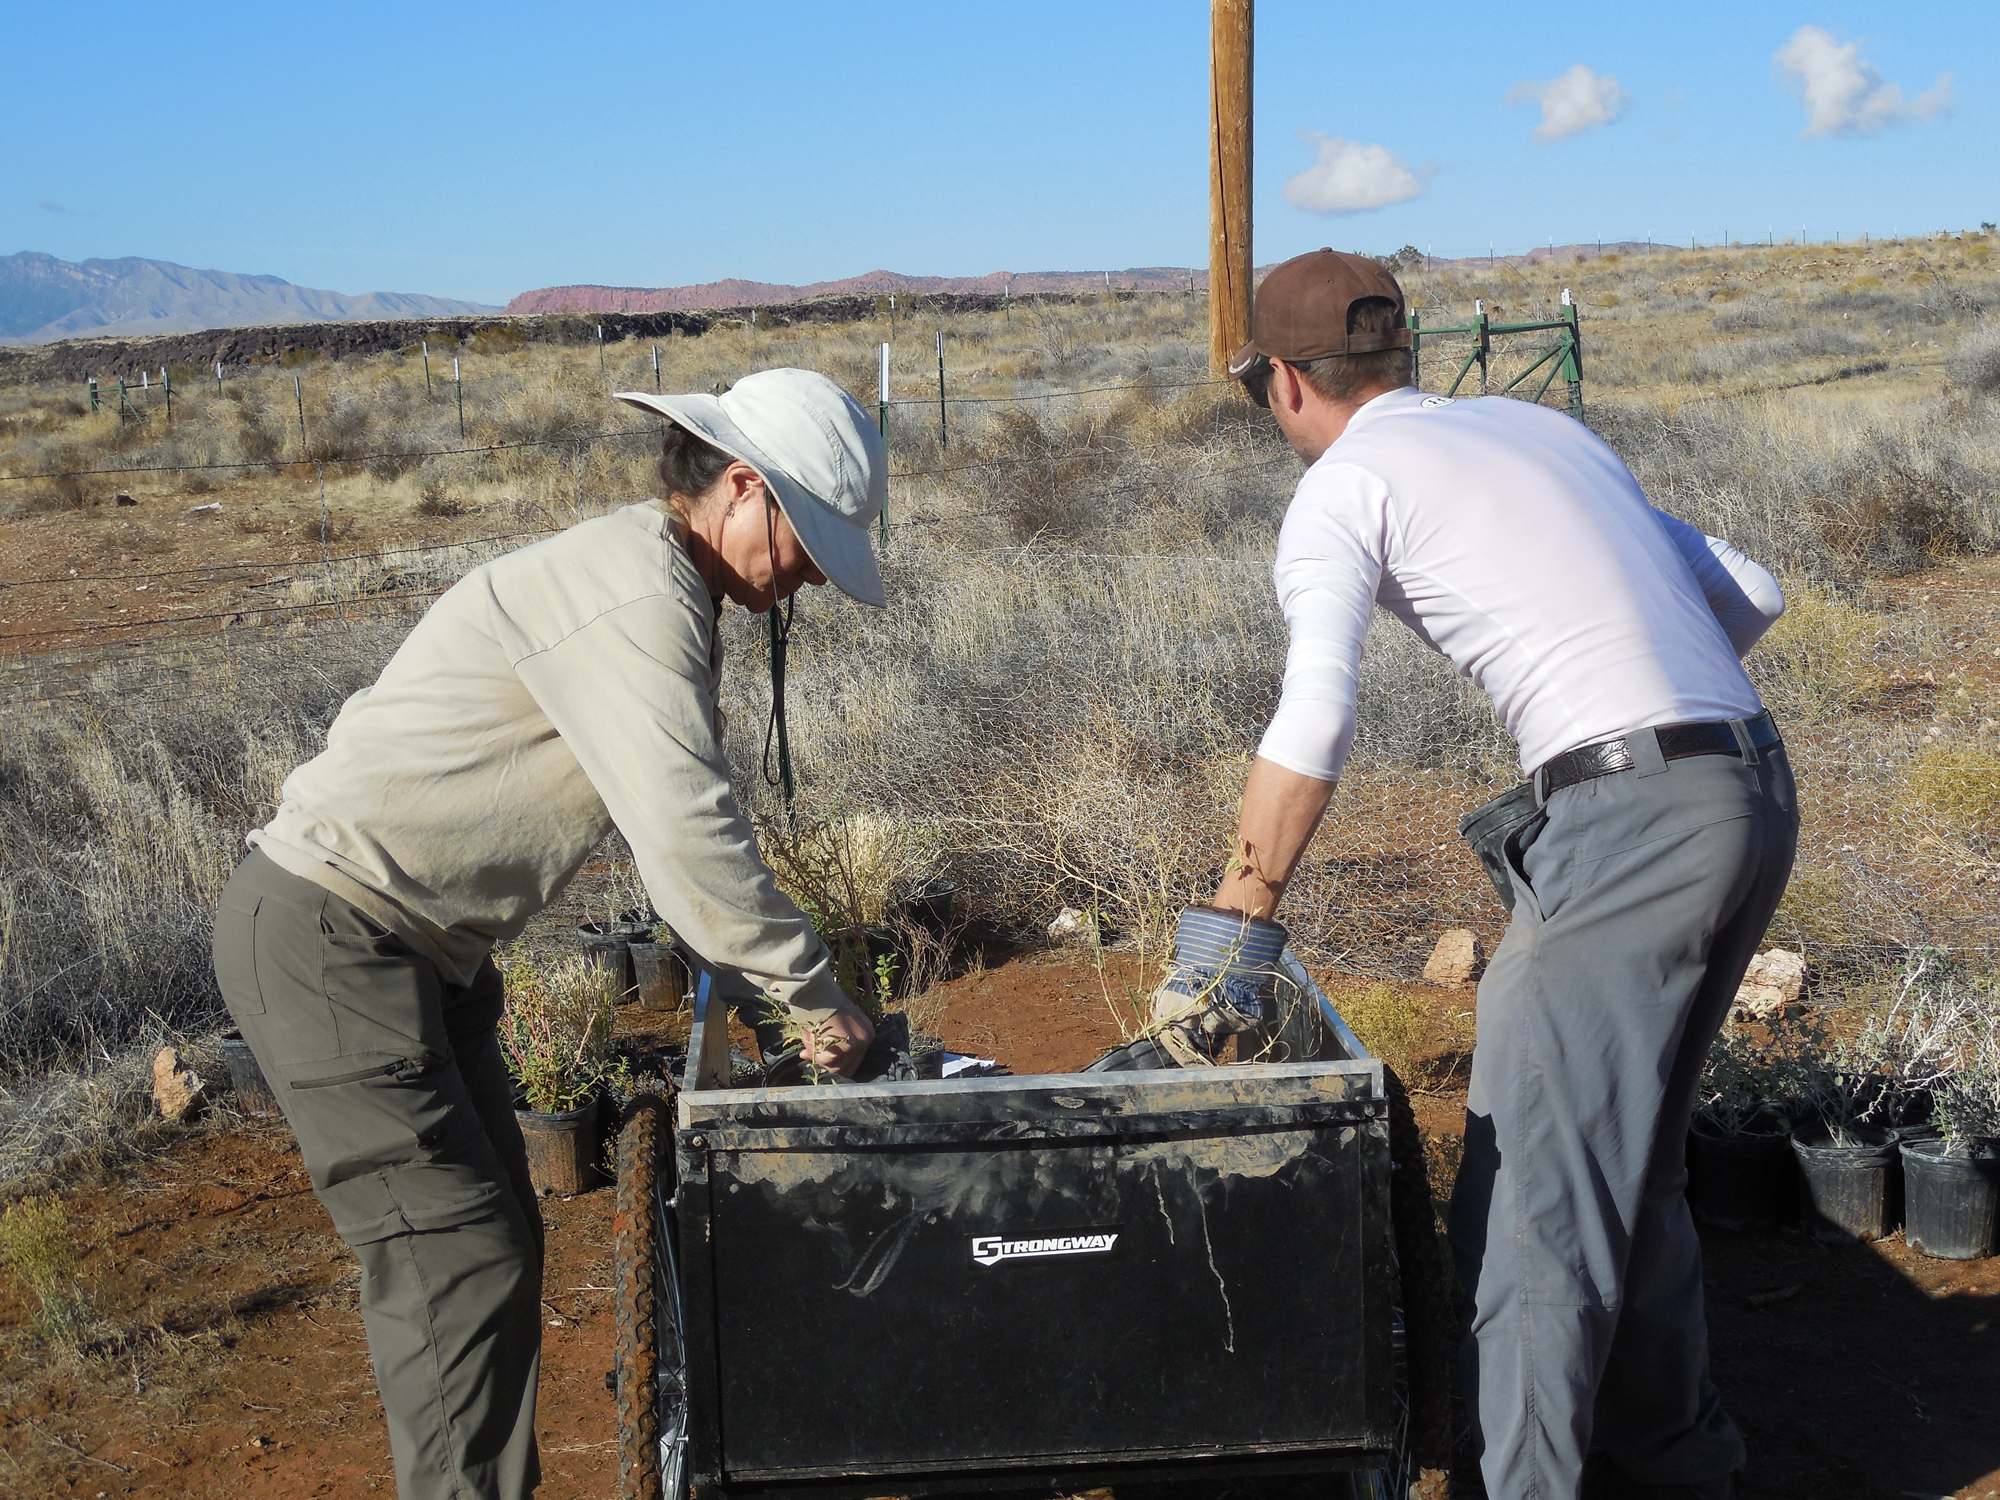 L-R, Ann McLuckie and Rob Bowers, of the Utah Division of Wildlife Resources, load up a cart with native plants as part of a habitat rehabilitation effort in the Red Cliffs Desert Reserve, Washington County, Utah, Nov. 22, 2016 | Photo by Julie Applegate, St. George News